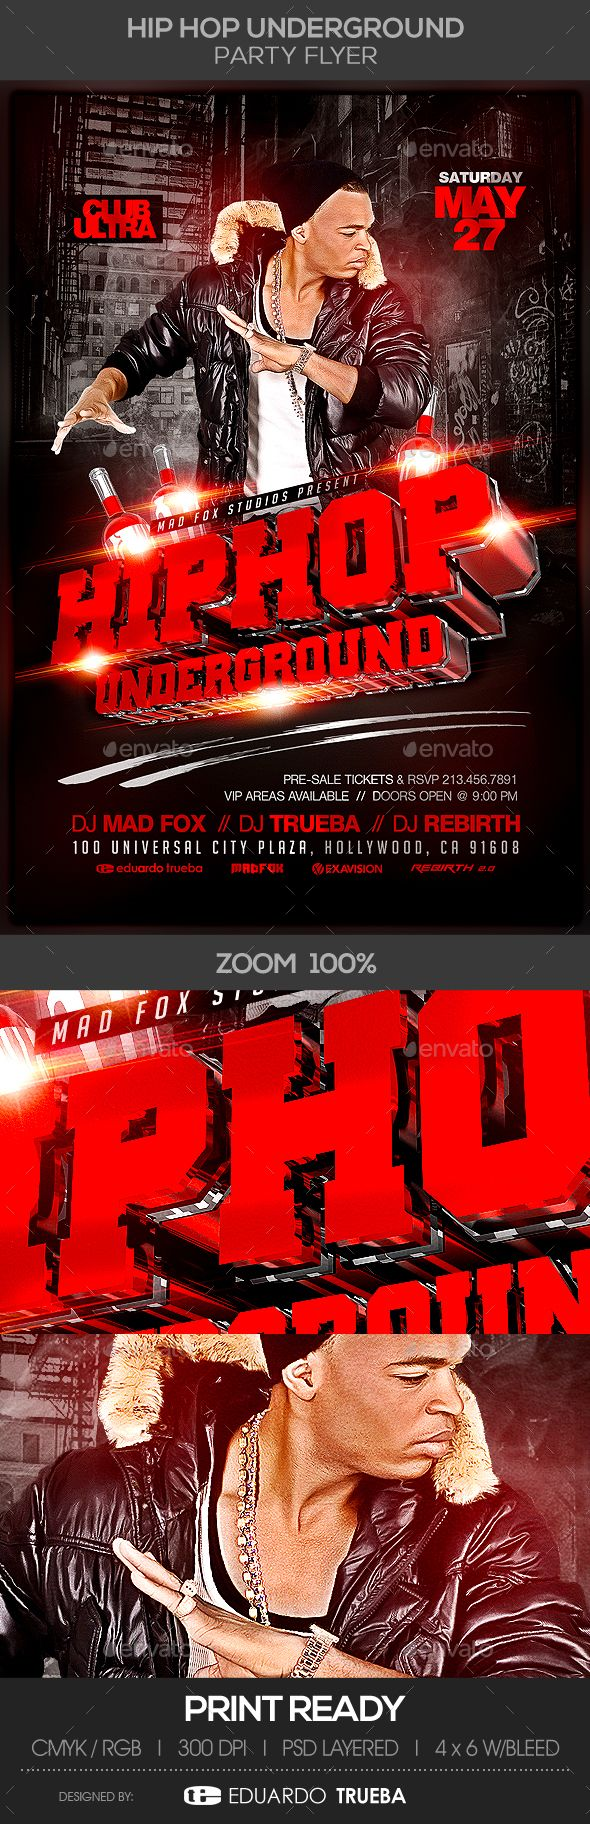 Hip Hop Underground #Party #Flyer - Clubs & Parties Events Download here: https://graphicriver.net/item/hip-hop-underground-party-flyer/19715532?ref=alena994